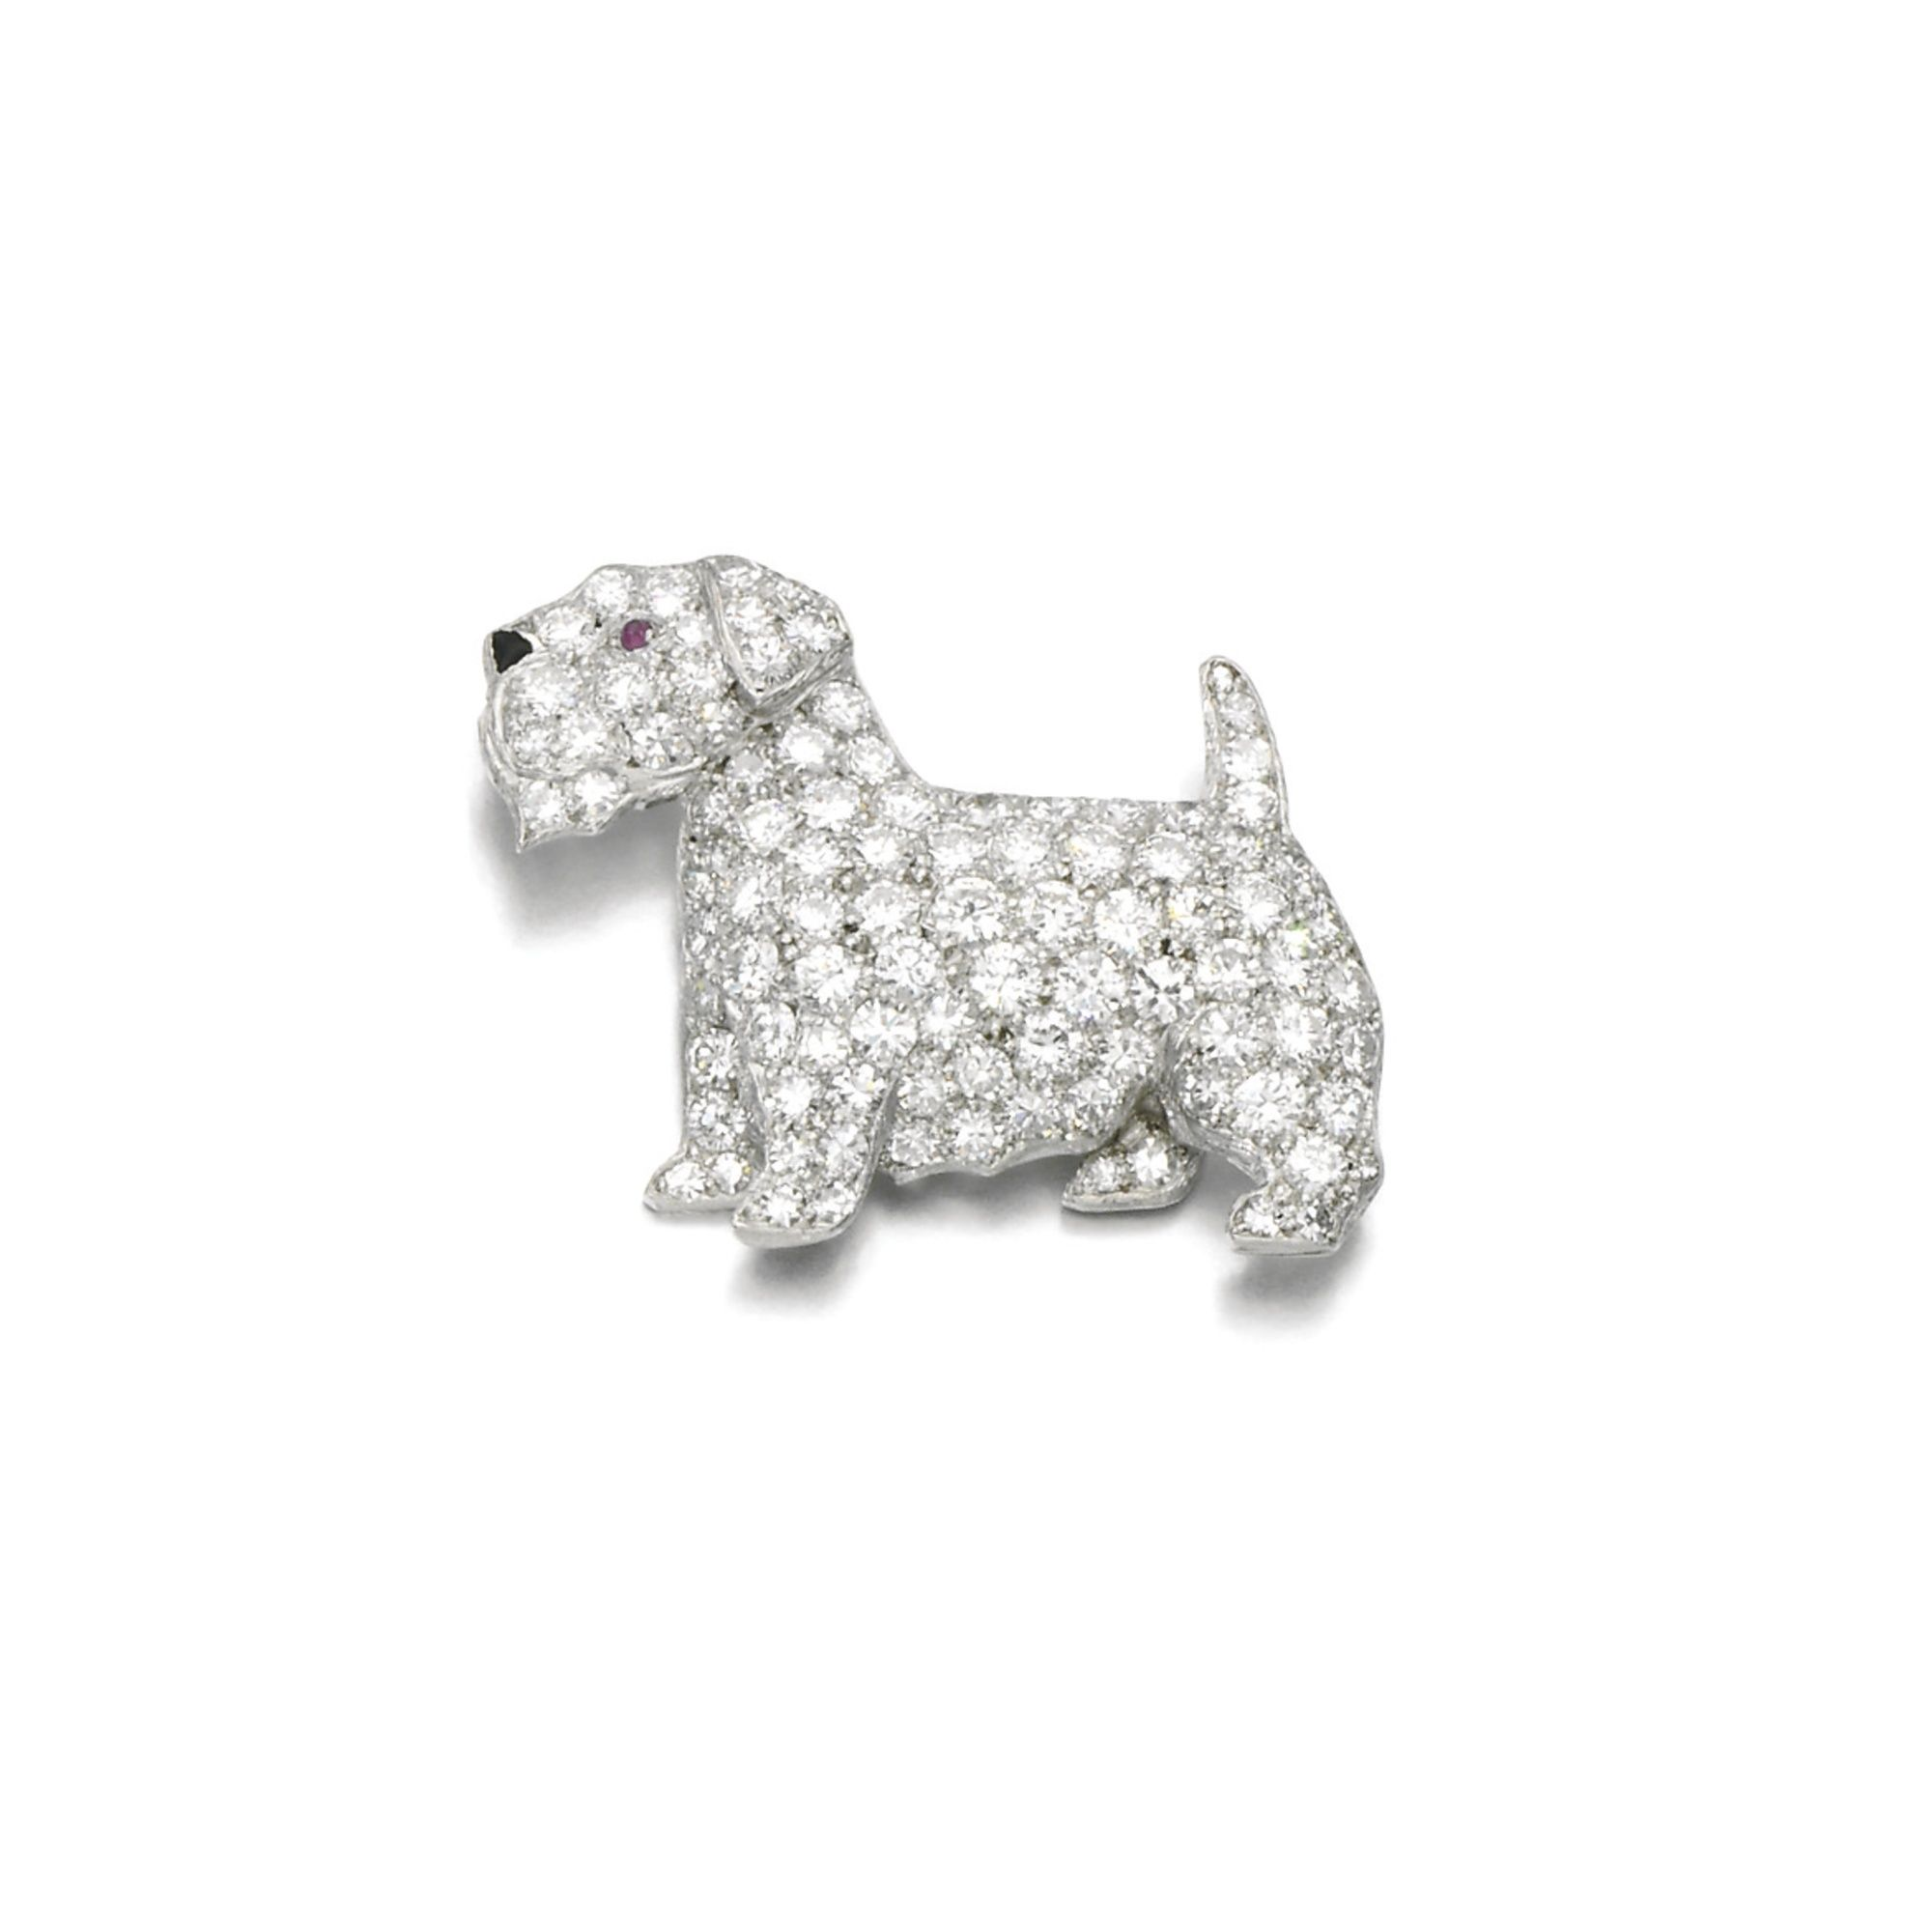 Diamond, ruby and onyx brooch, Cartier, 1930s Designed as a Norfolk Terrier, pavé-set with circular- and single-cut diamonds, with cabochon onyx nose and ruby eye, signed Cartier, numbered.